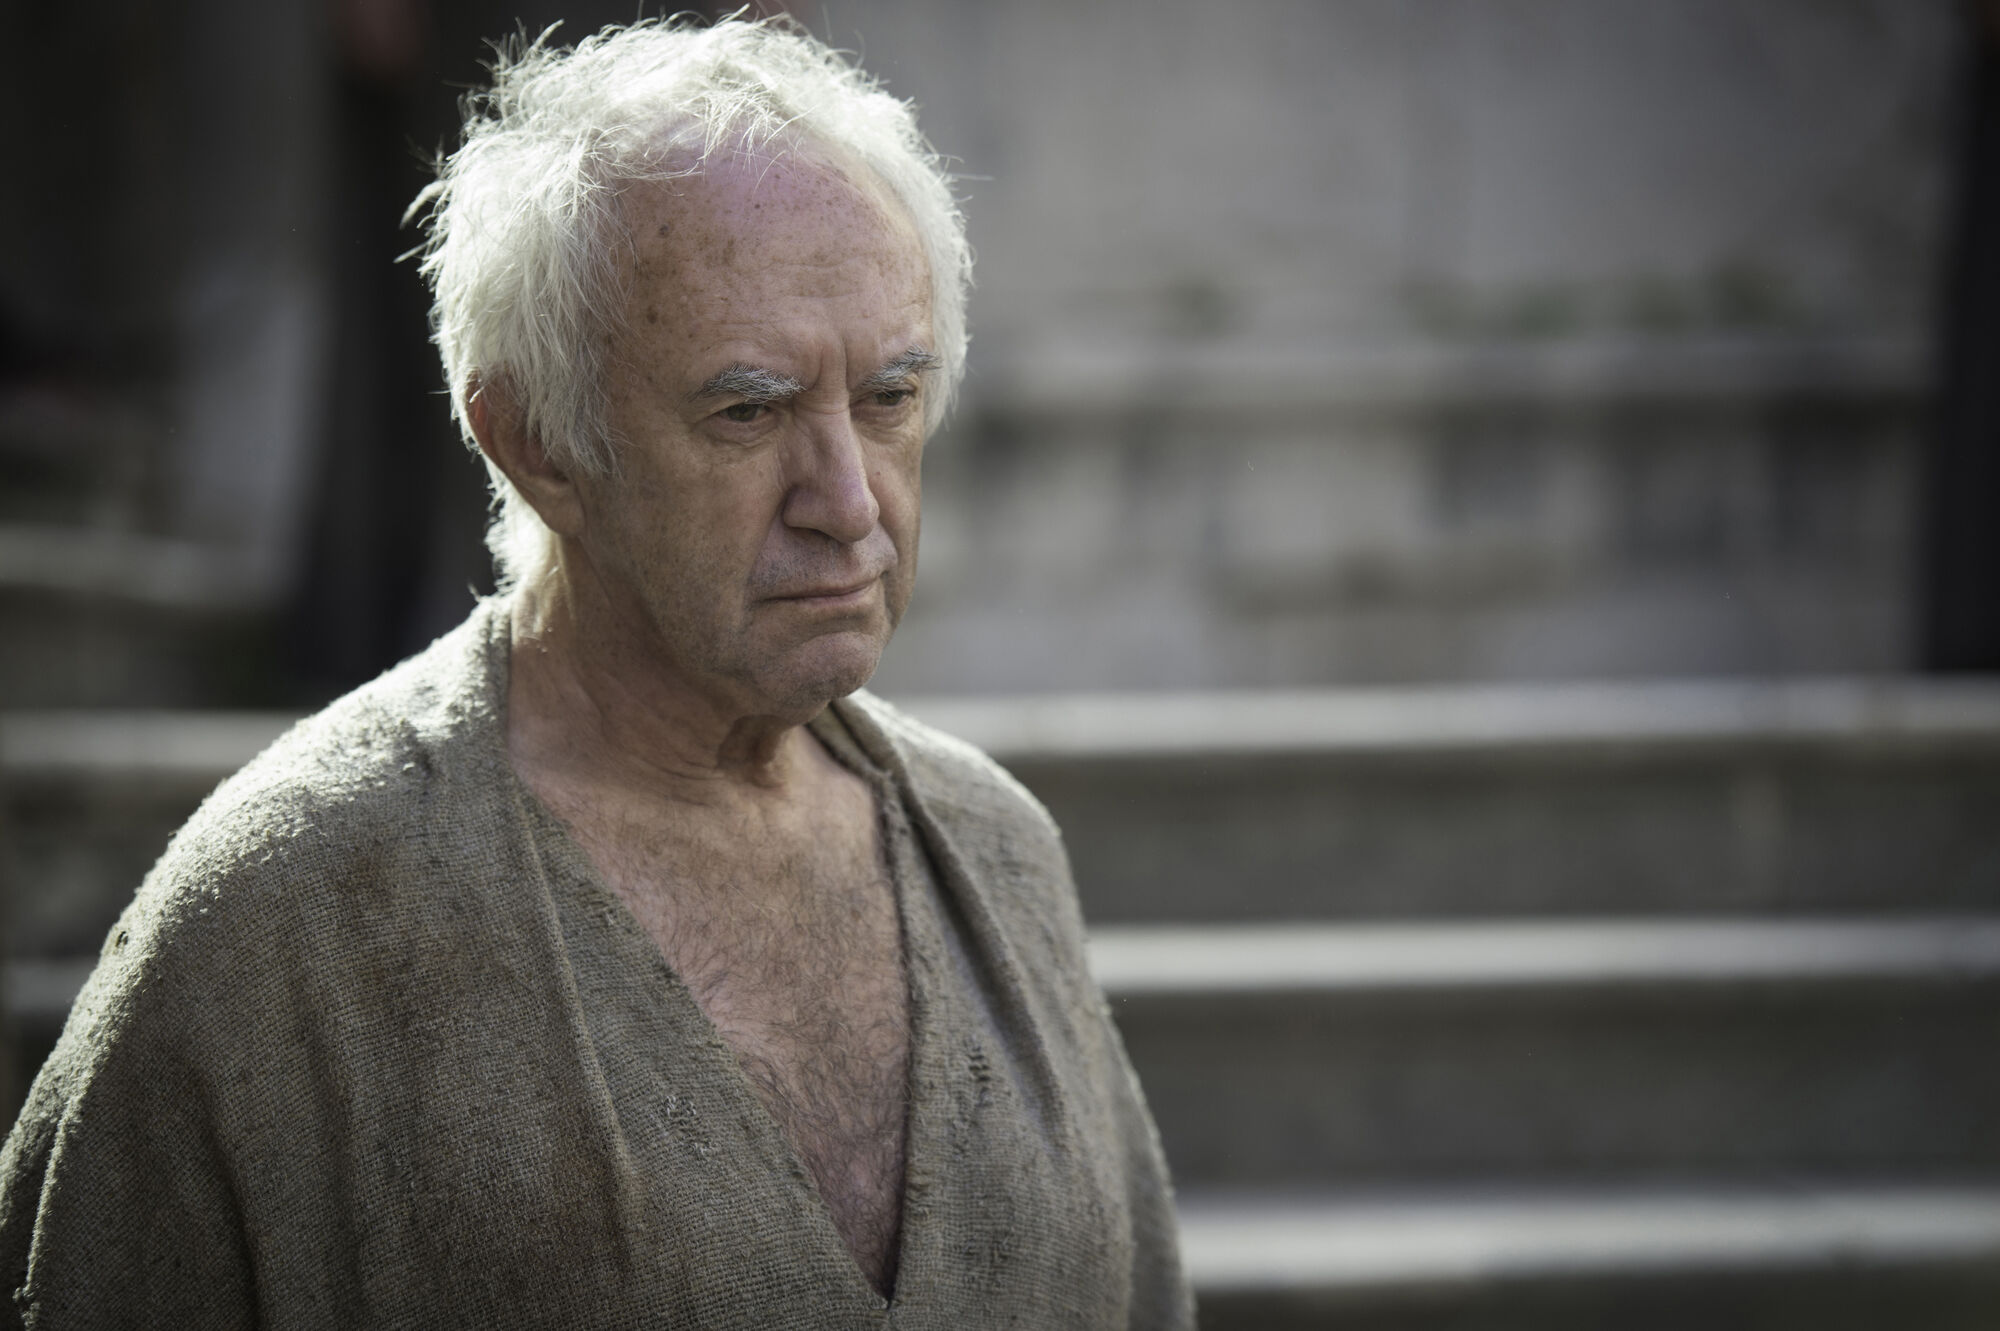 Category house mallister game of thrones wiki fandom - The High Sparrow Promo Pic